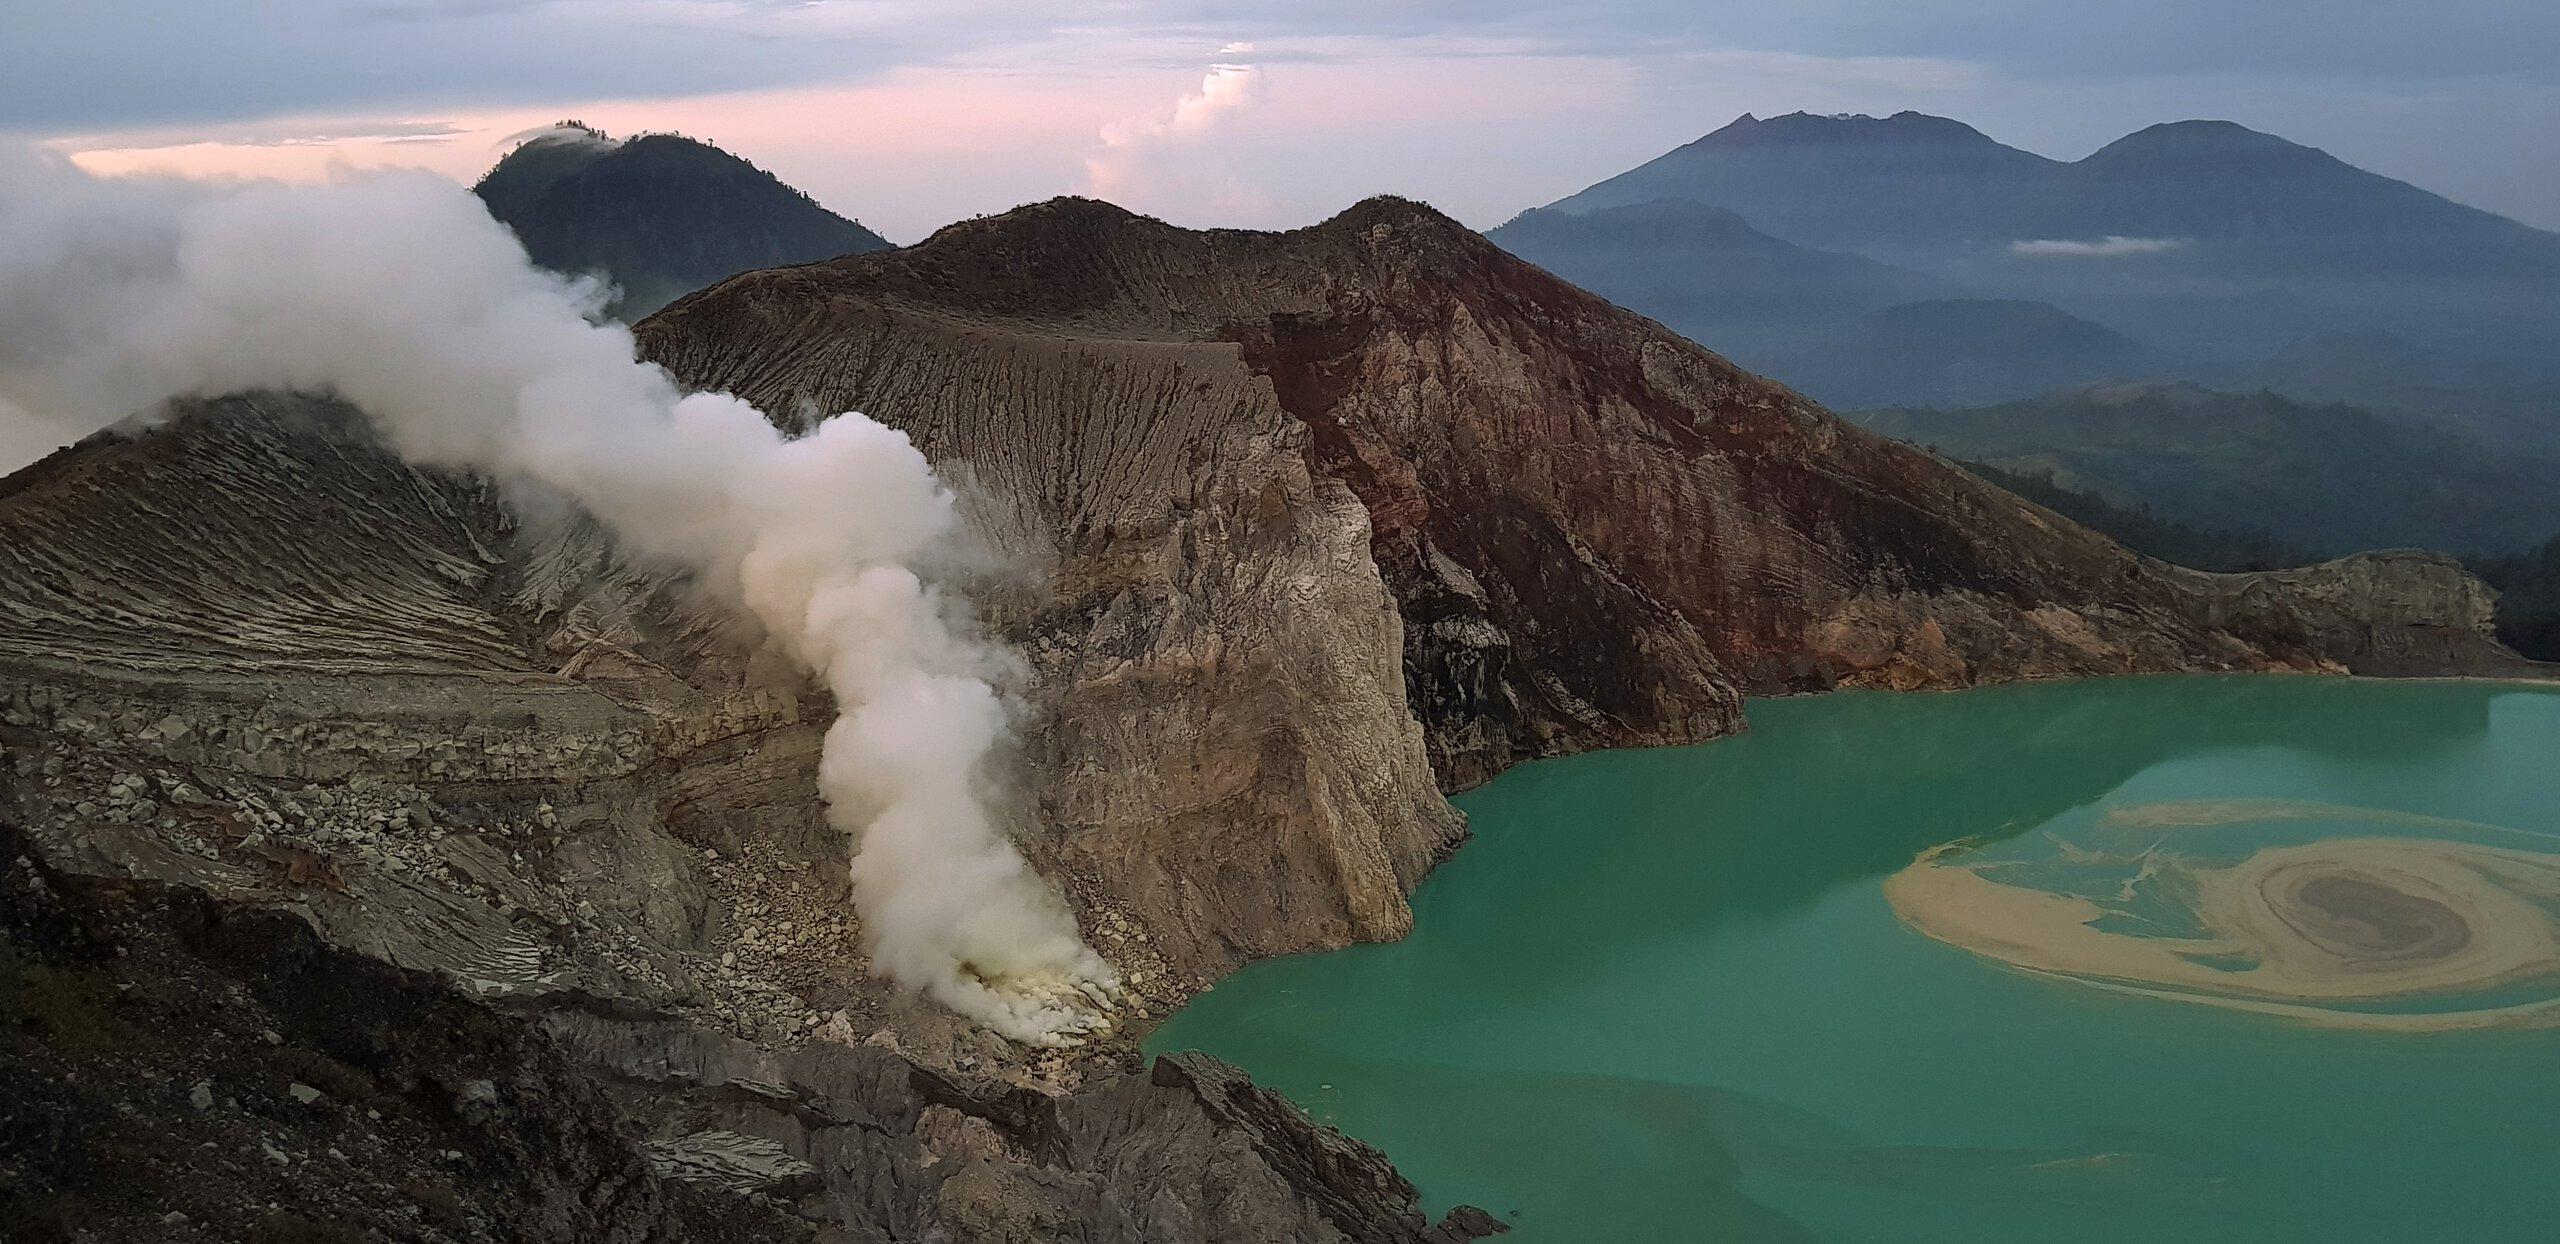 crater of ijen volcano, acid lake at the bottom, sulphur fumes